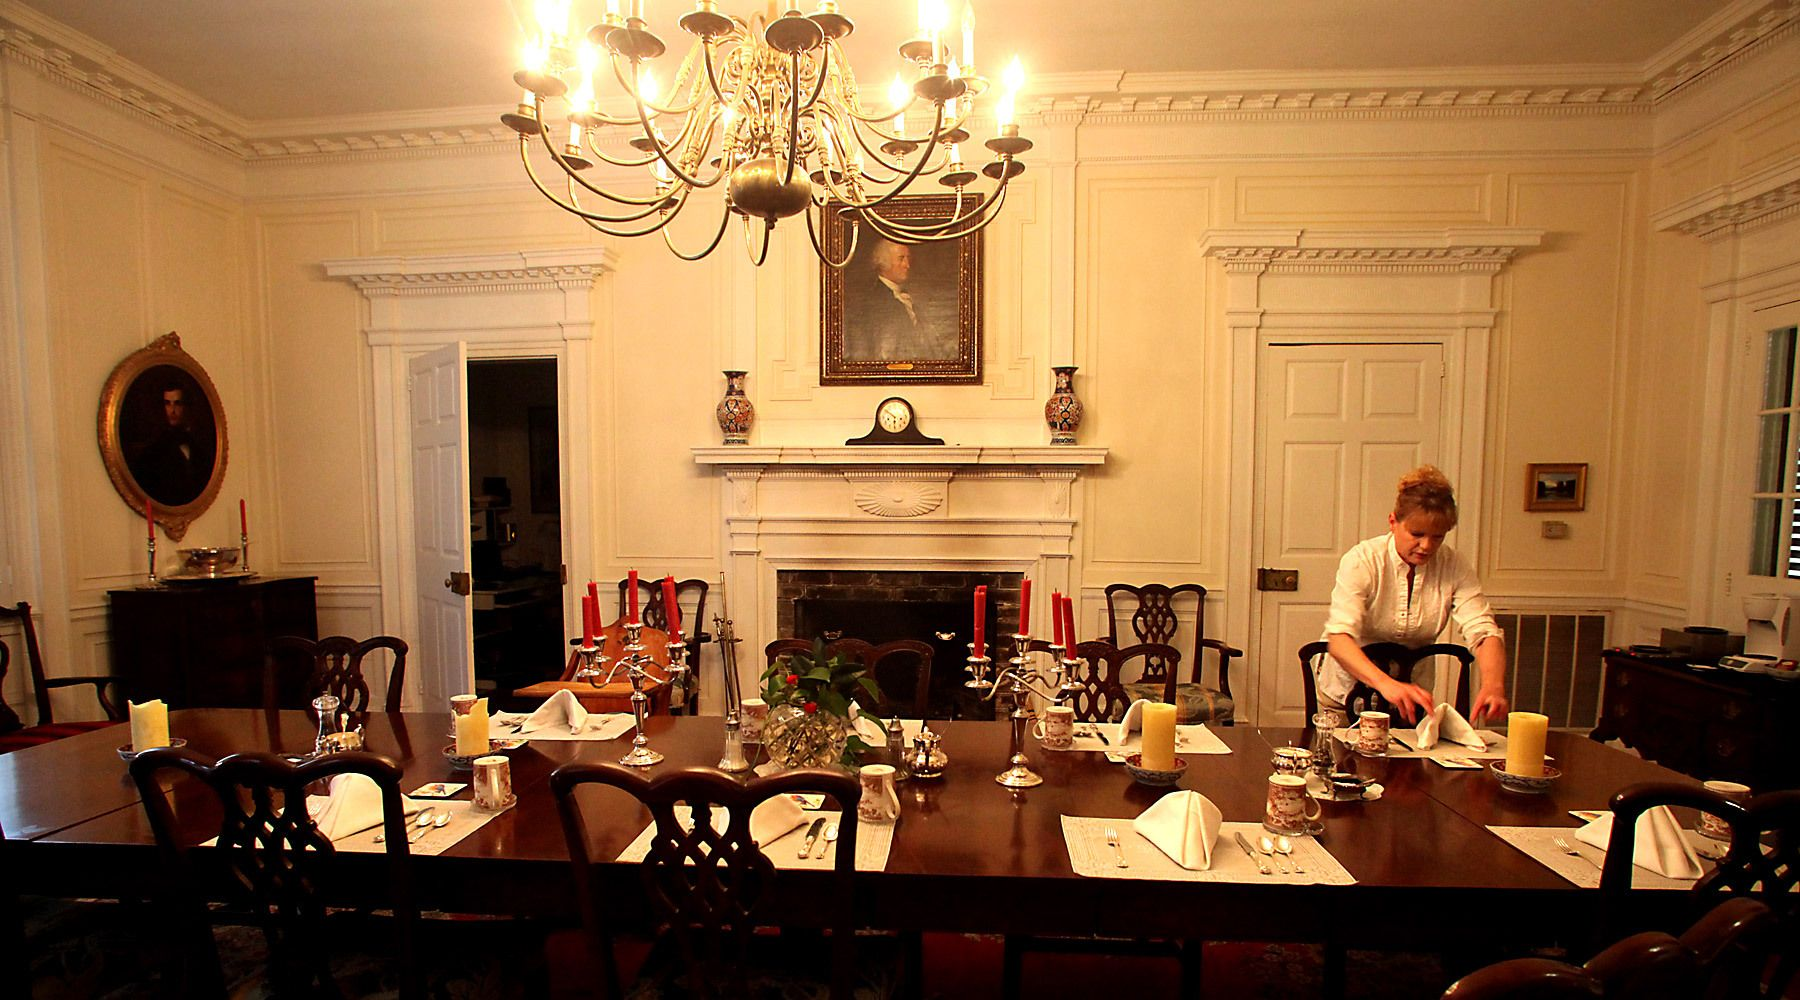 In the main dinning room, innkeeper Kathryn Green prepares breakfast for guests February 23, 2012, at Mansfield Plantation in Georgetown, S.C. The plantation is a National Historic Landmark consisting of 893 acres located on Black River. A former rice plantation, the property was converted into a bread and breakfast in 1990. Mansfield has 9 guests rooms and can accommodate up to 23 guests. In the South Carolina Lowcountry, more than a half-dozen antebellum plantations, which don't change hands often, are for sale.REUTERS/Randall Hill